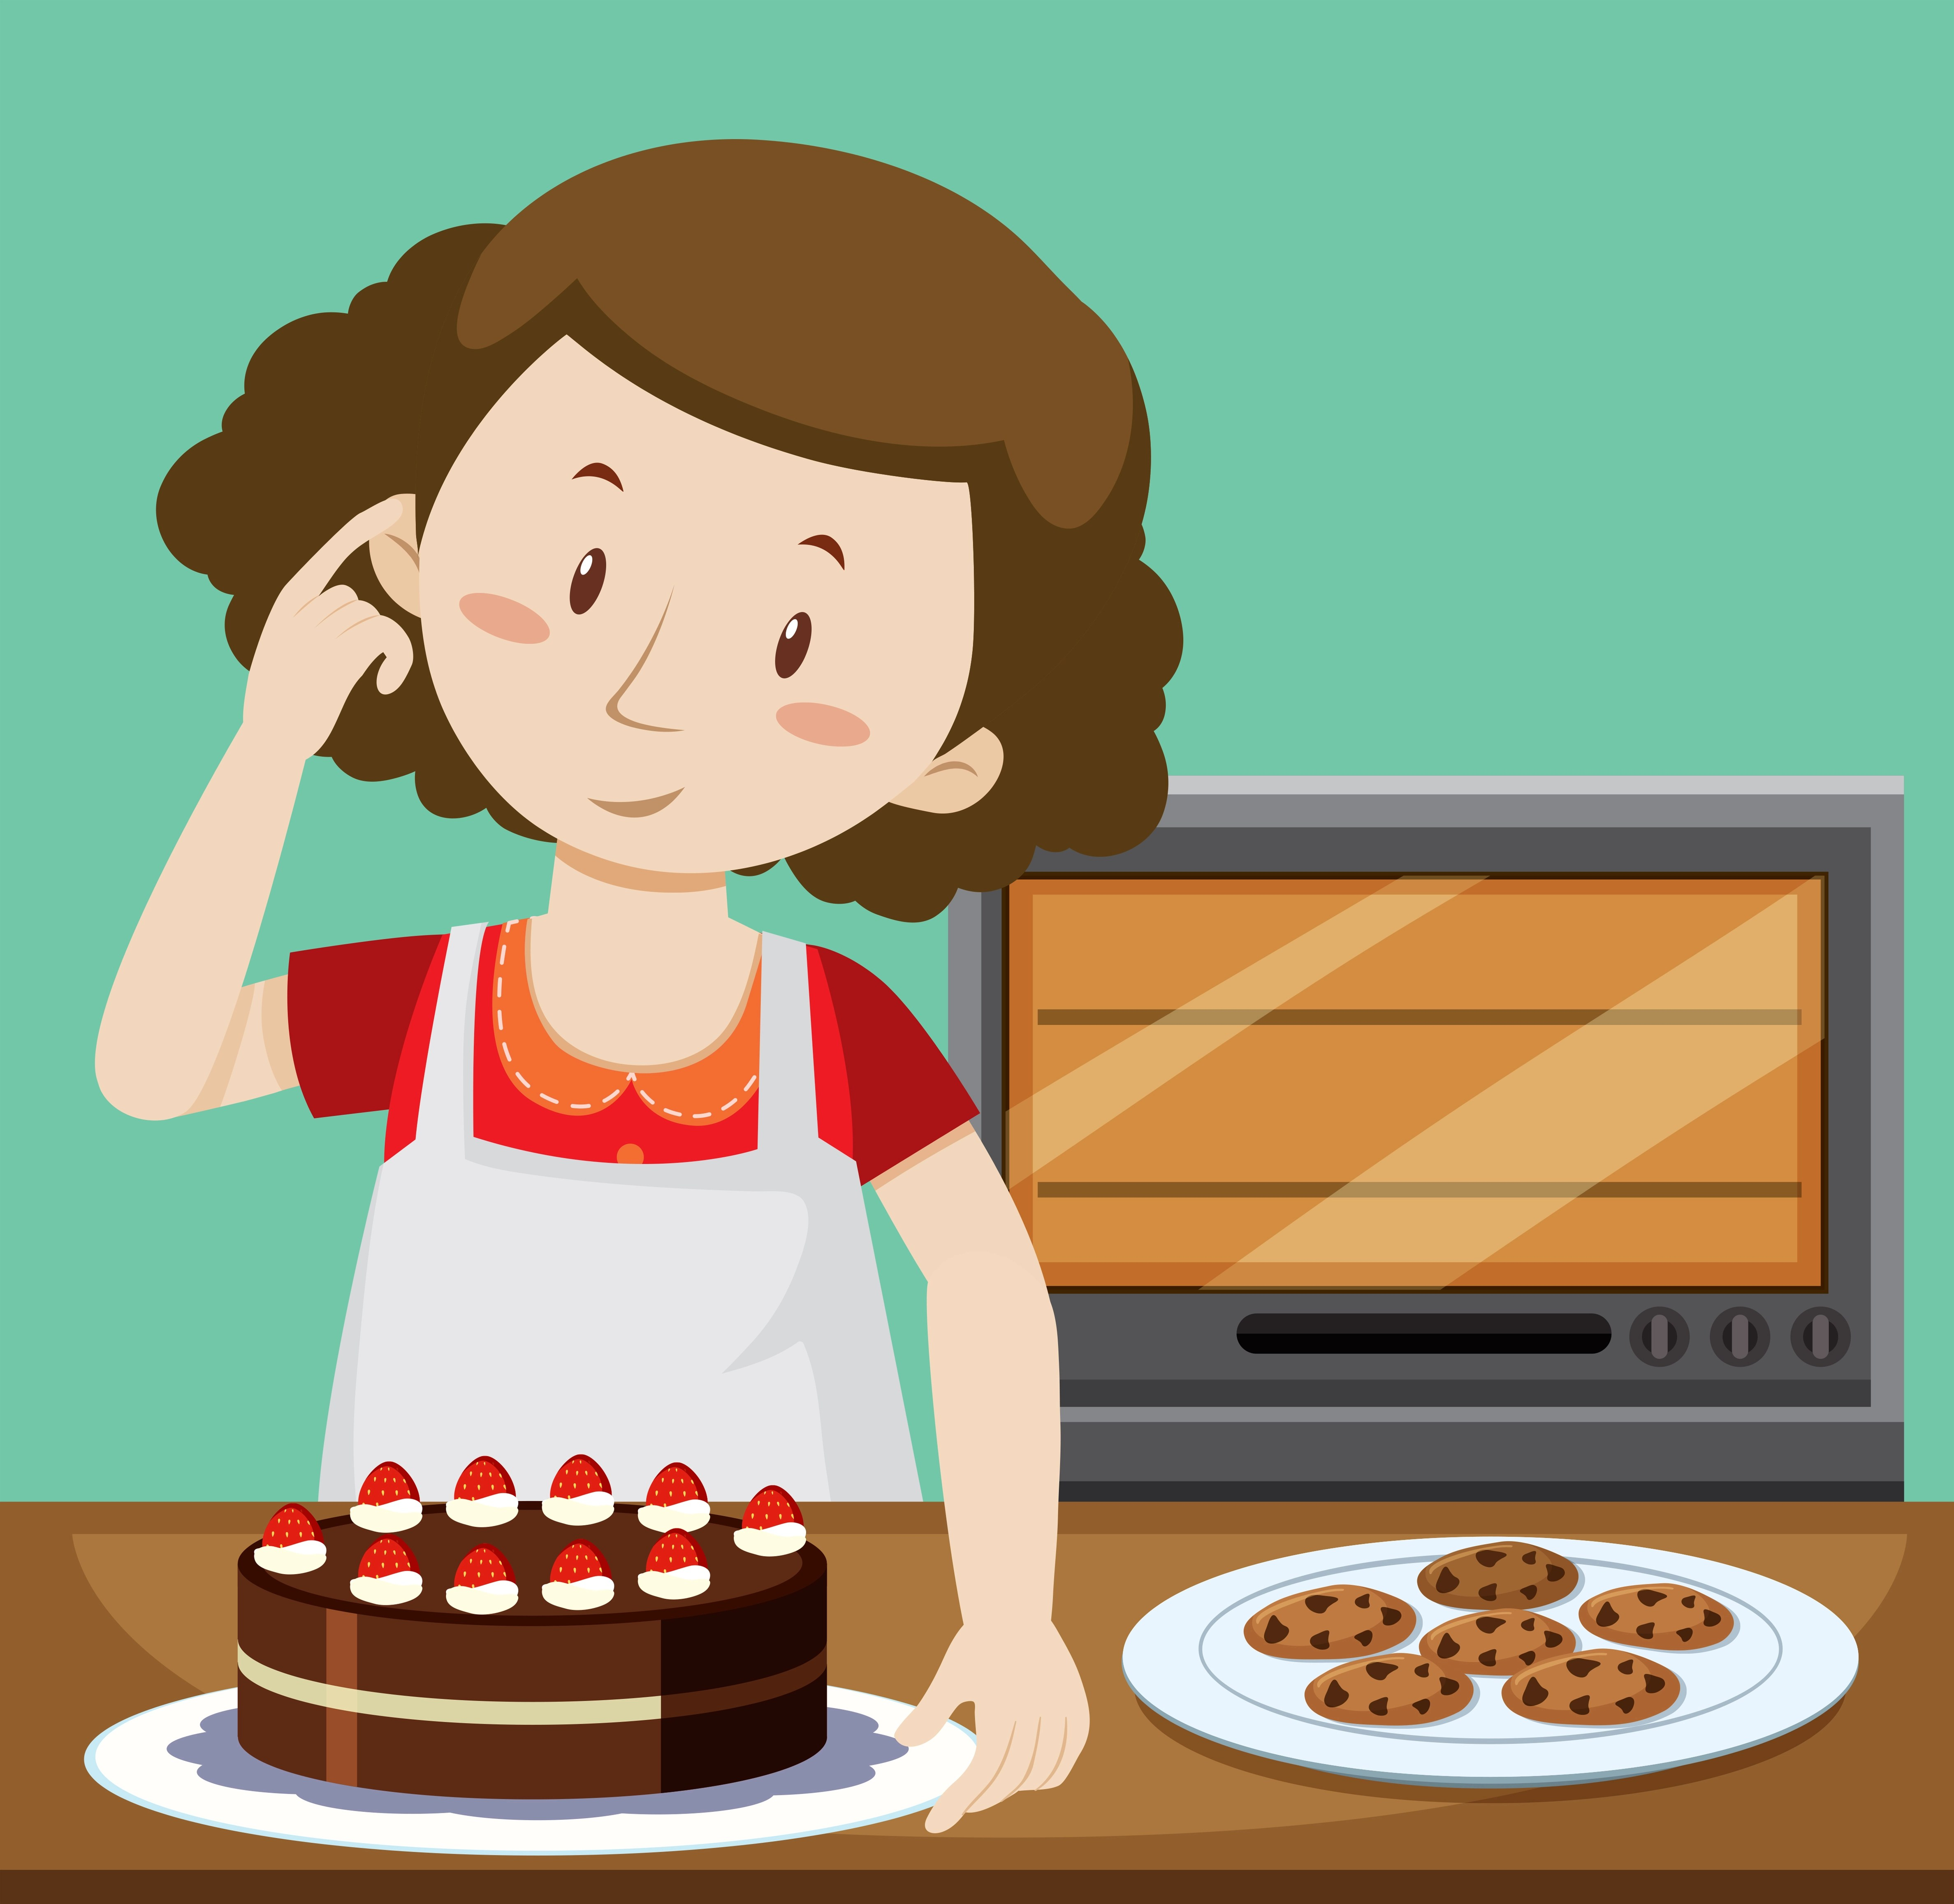 Woman Baking Cake And Cookies Download Free Vectors